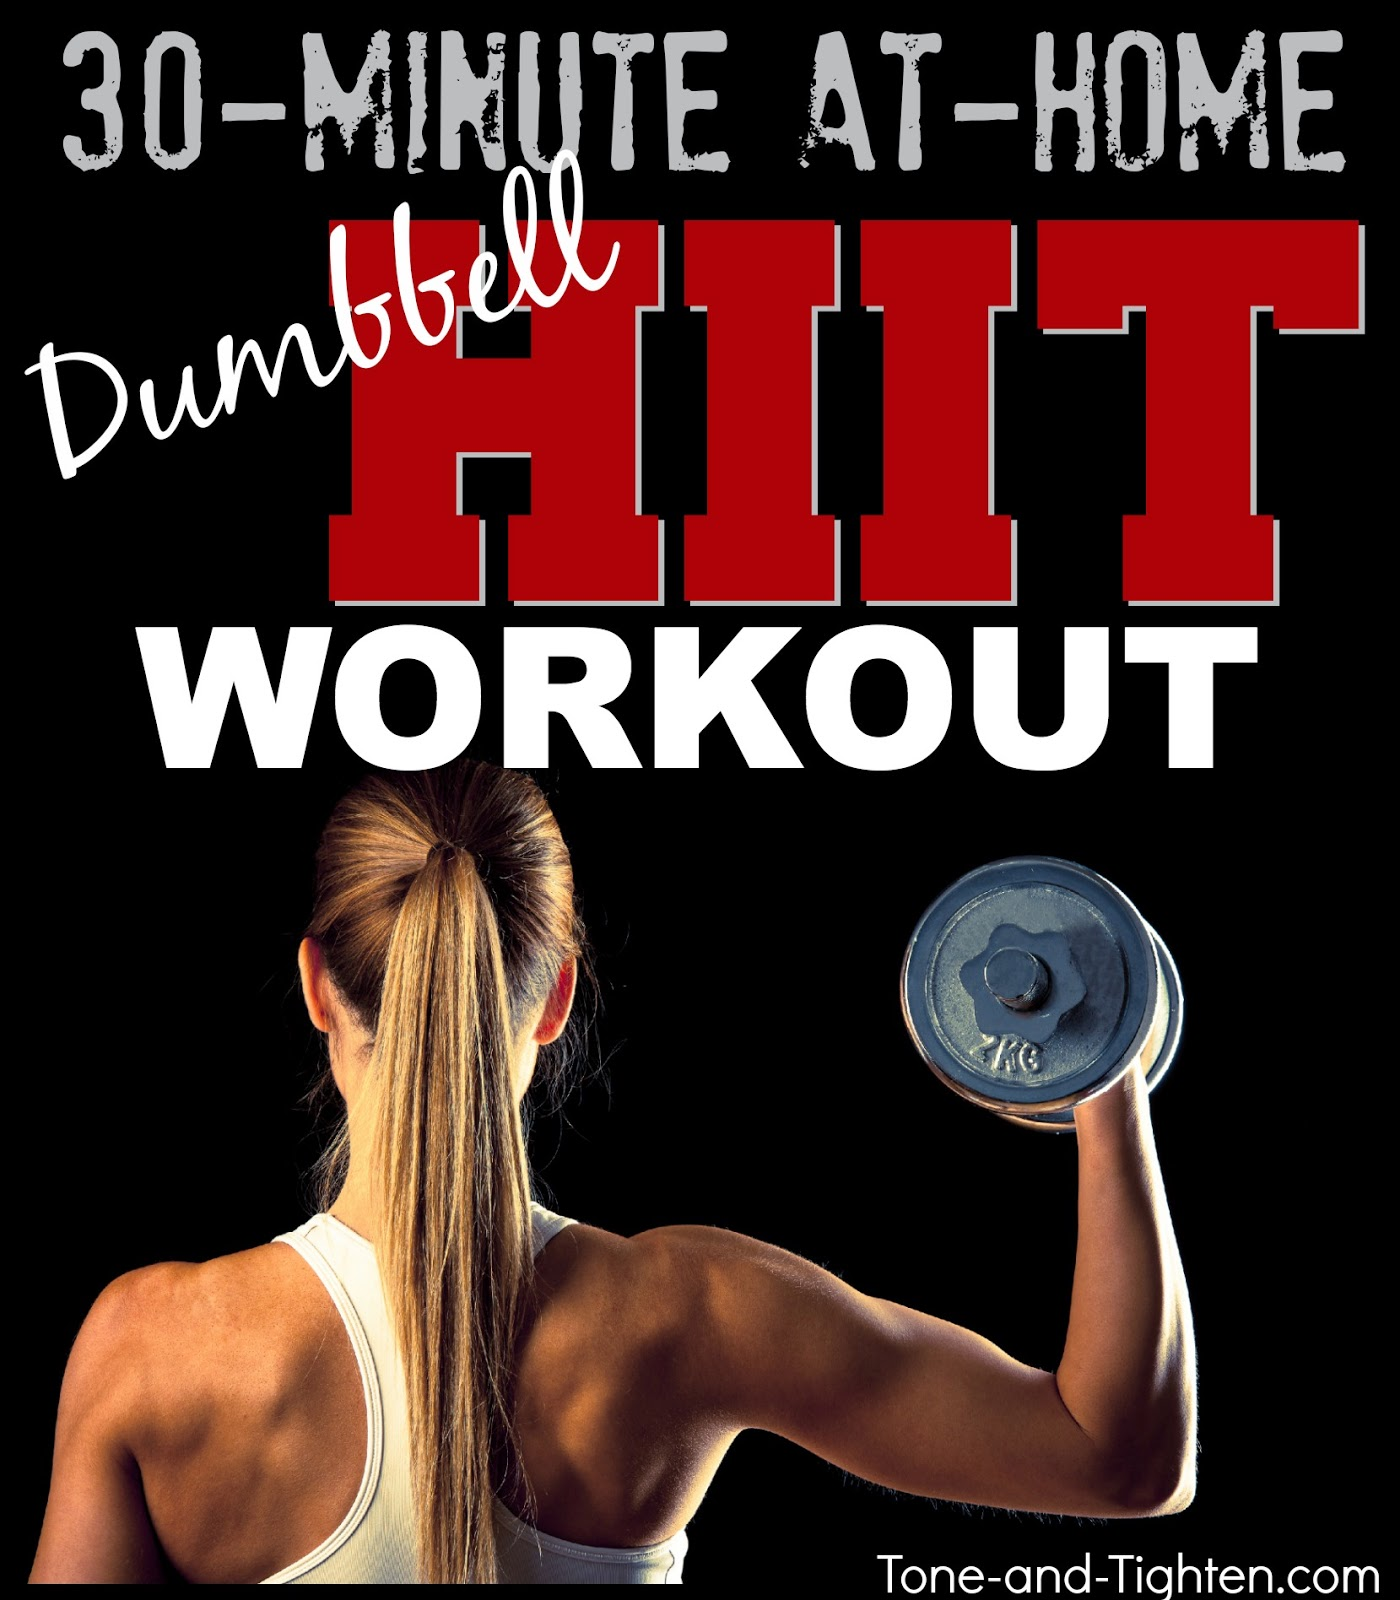 30 Minute HIIT Workout With Dumbbells | Tone and Tighten